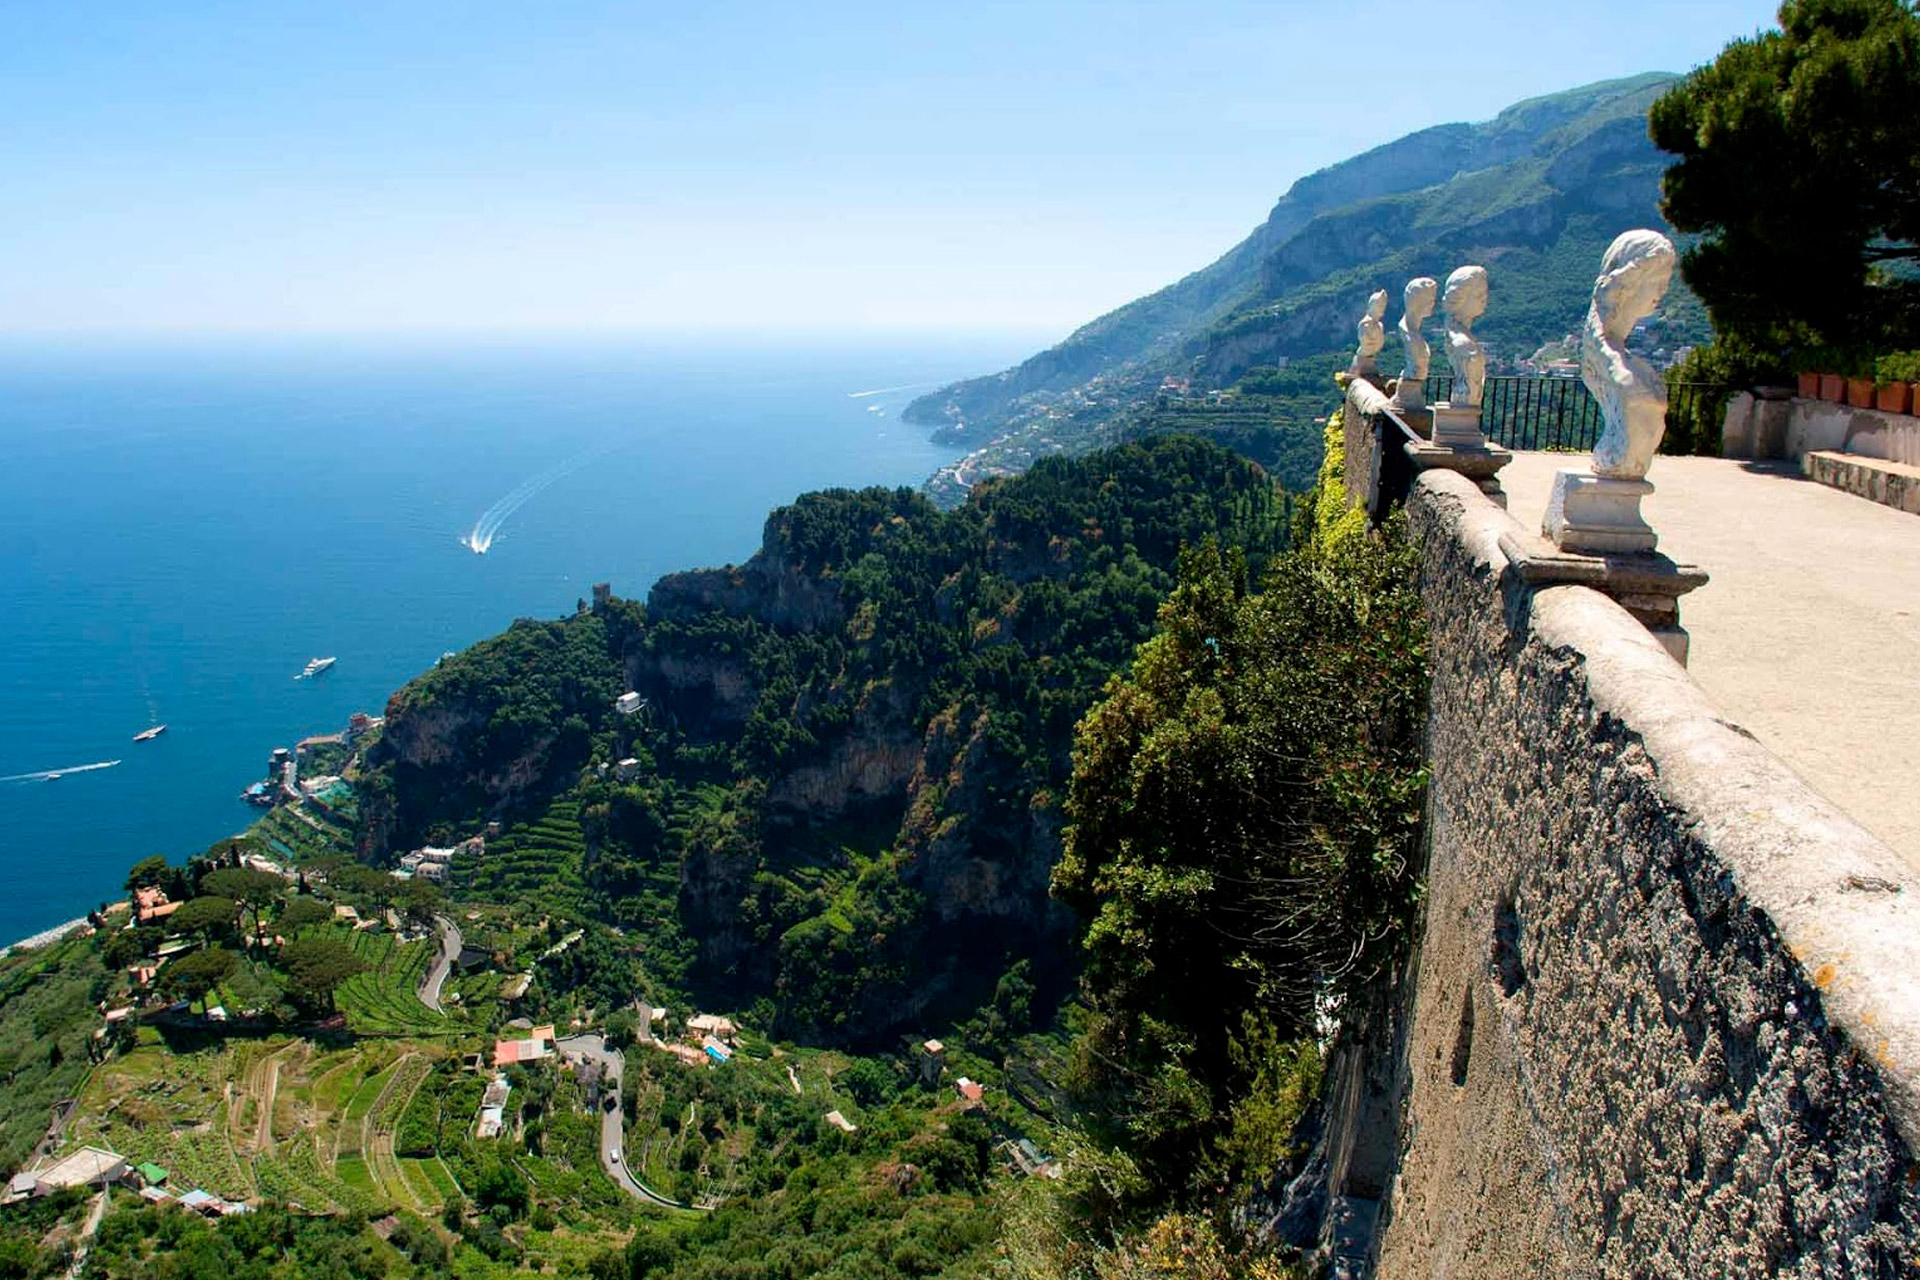 BEST ATTRACTIONS IN RAVELLO